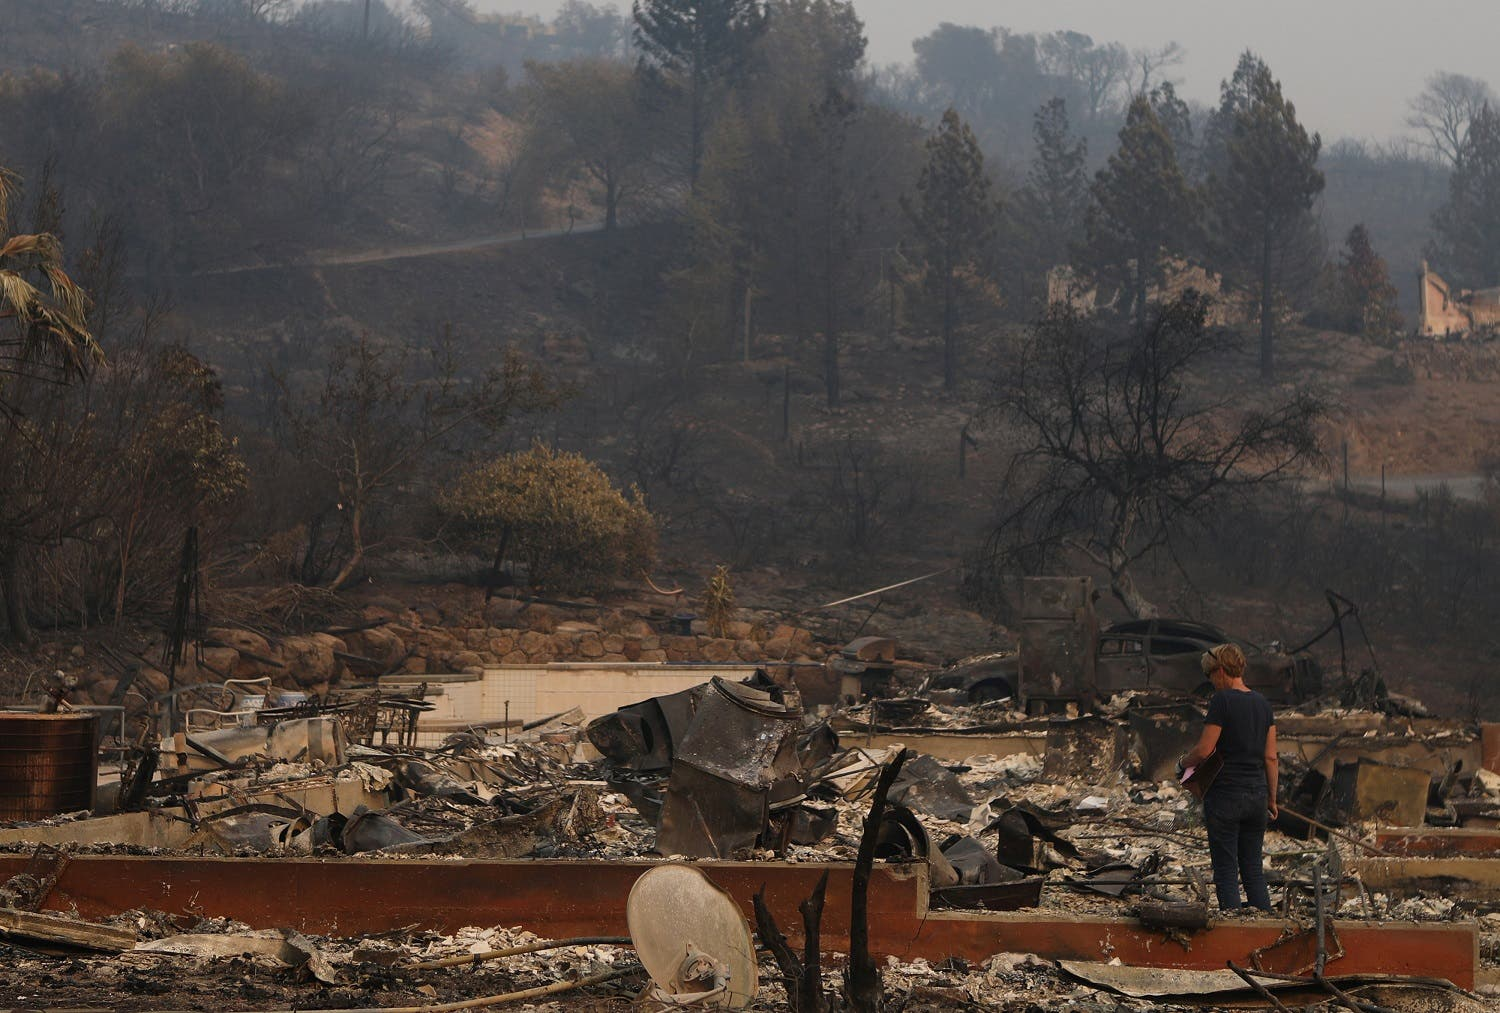 A woman surveys the remains of a home destroyed by wildfire in Napa, California, US, on October 13, 2017. (Reuters)